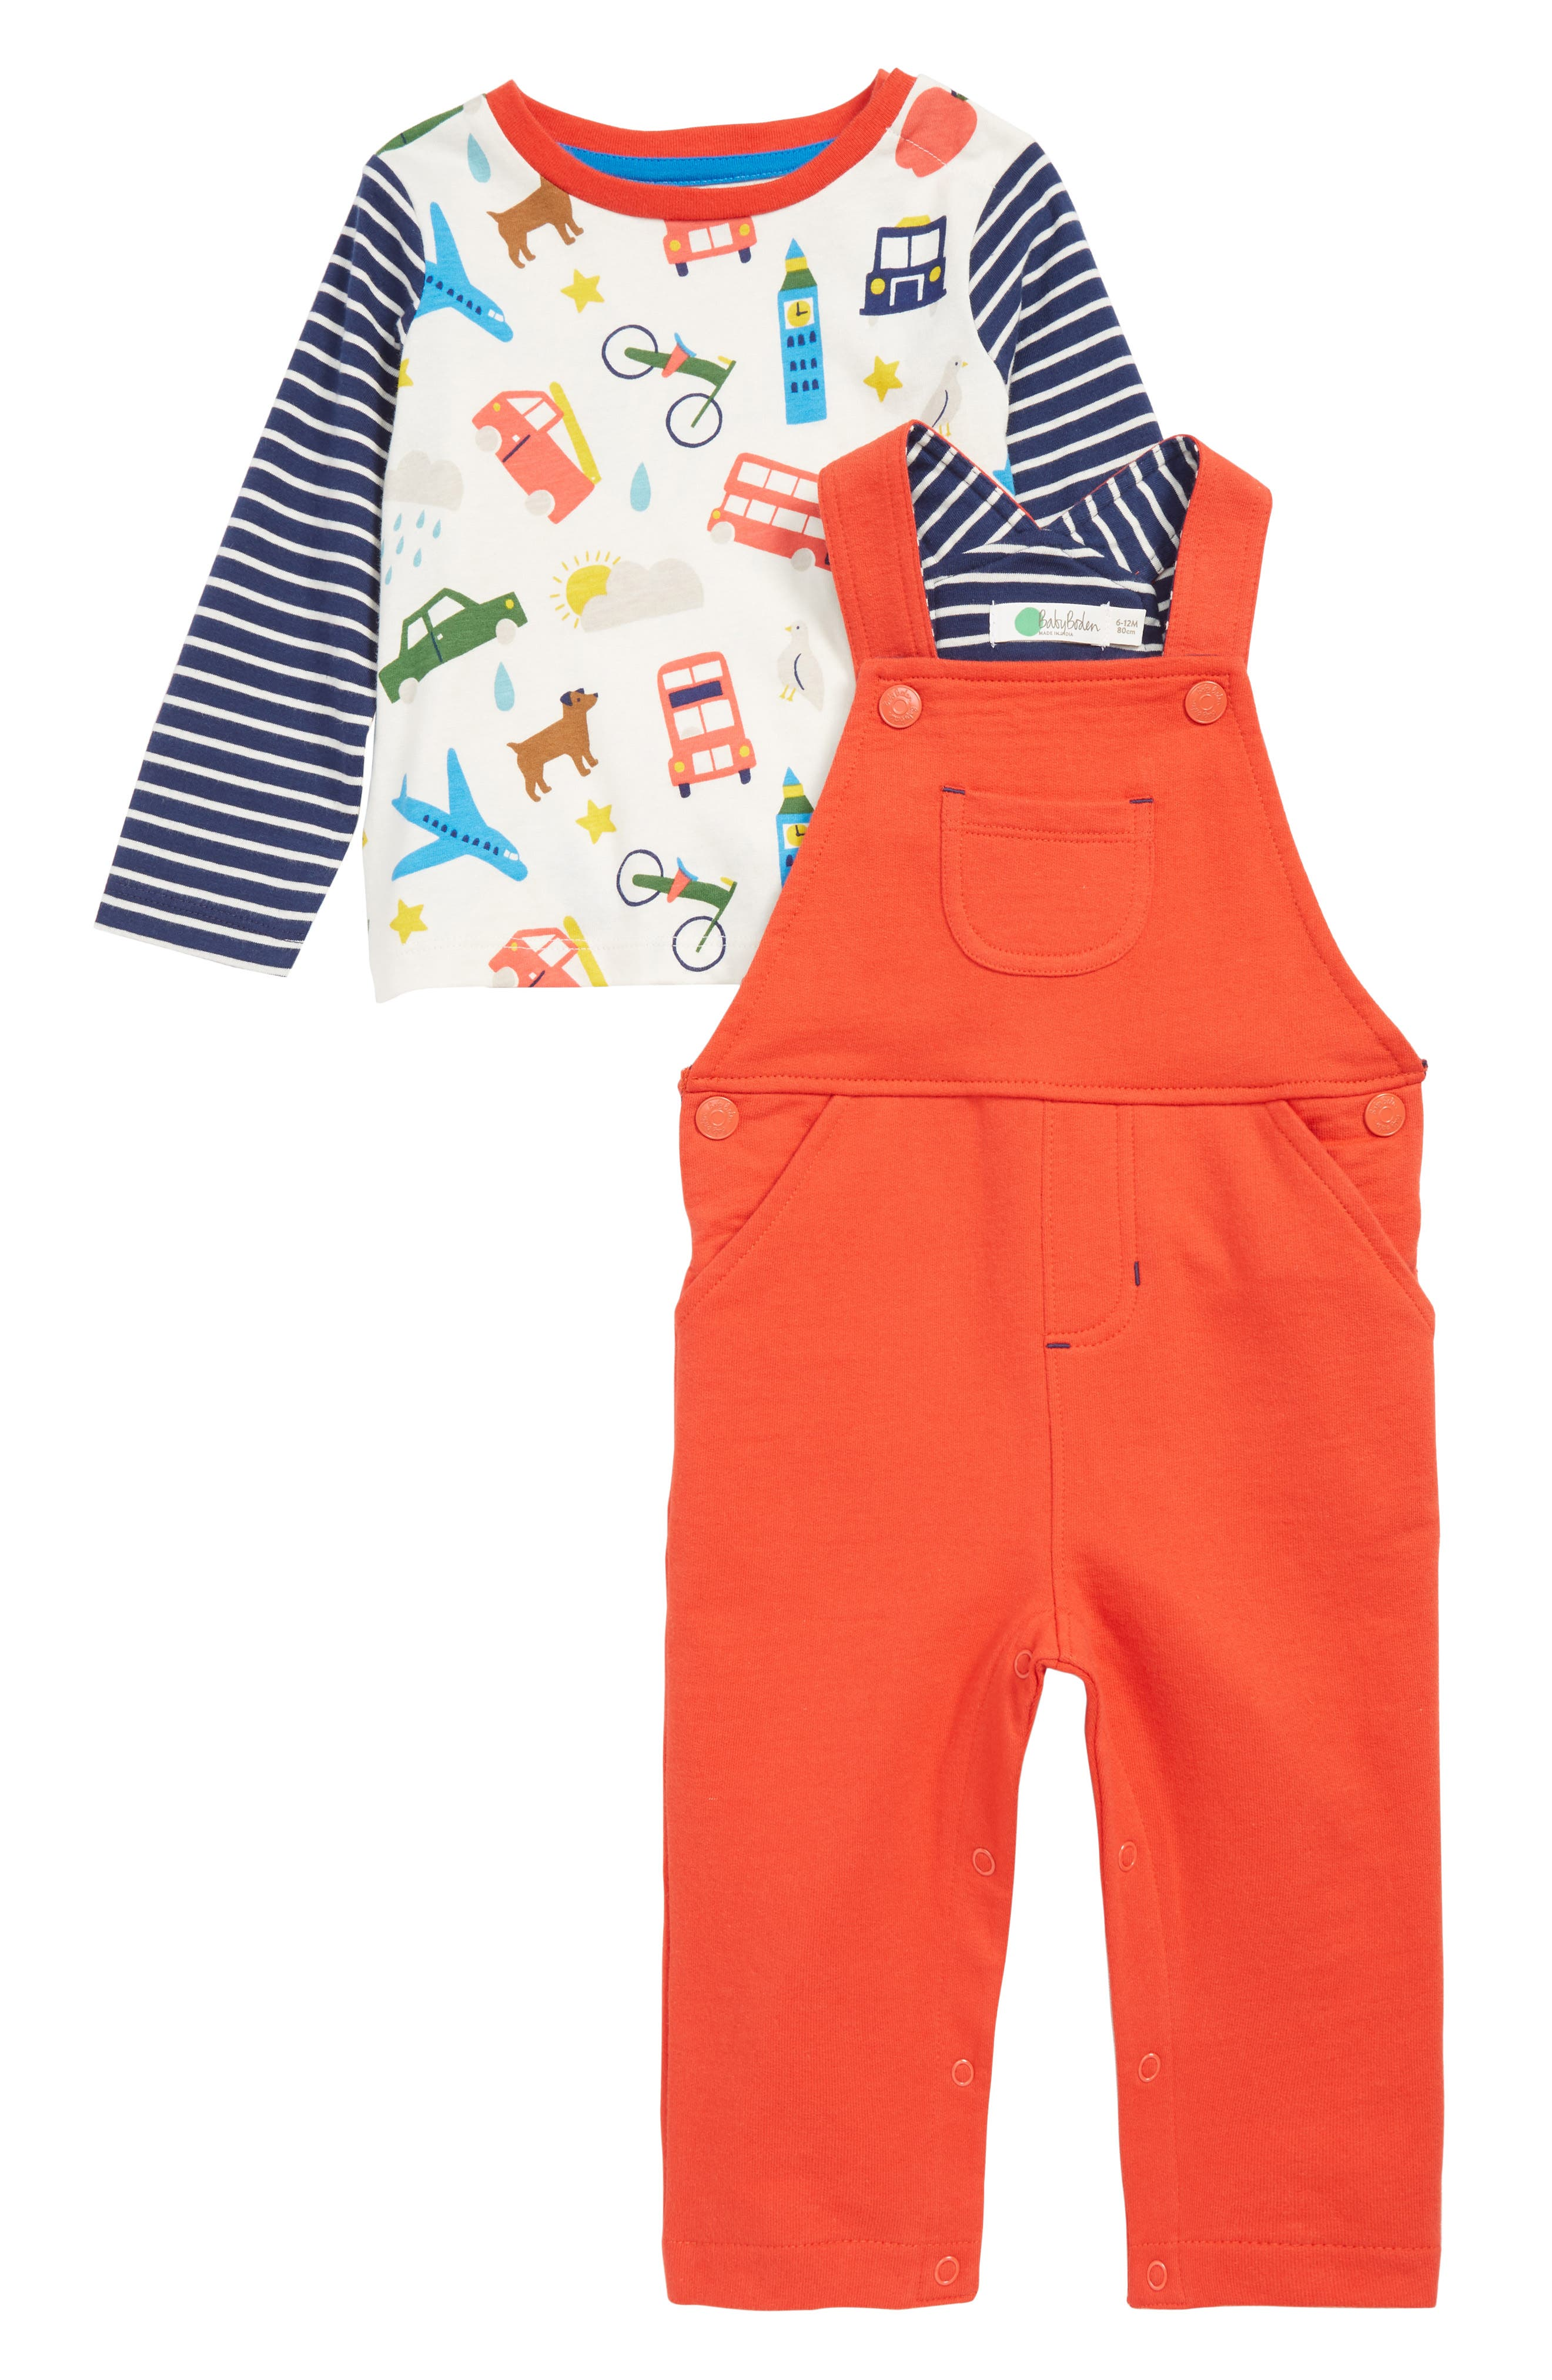 MINI BODEN Fun Dungaree Play T-Shirt & Overalls Set, Main, color, RED BEAM RED